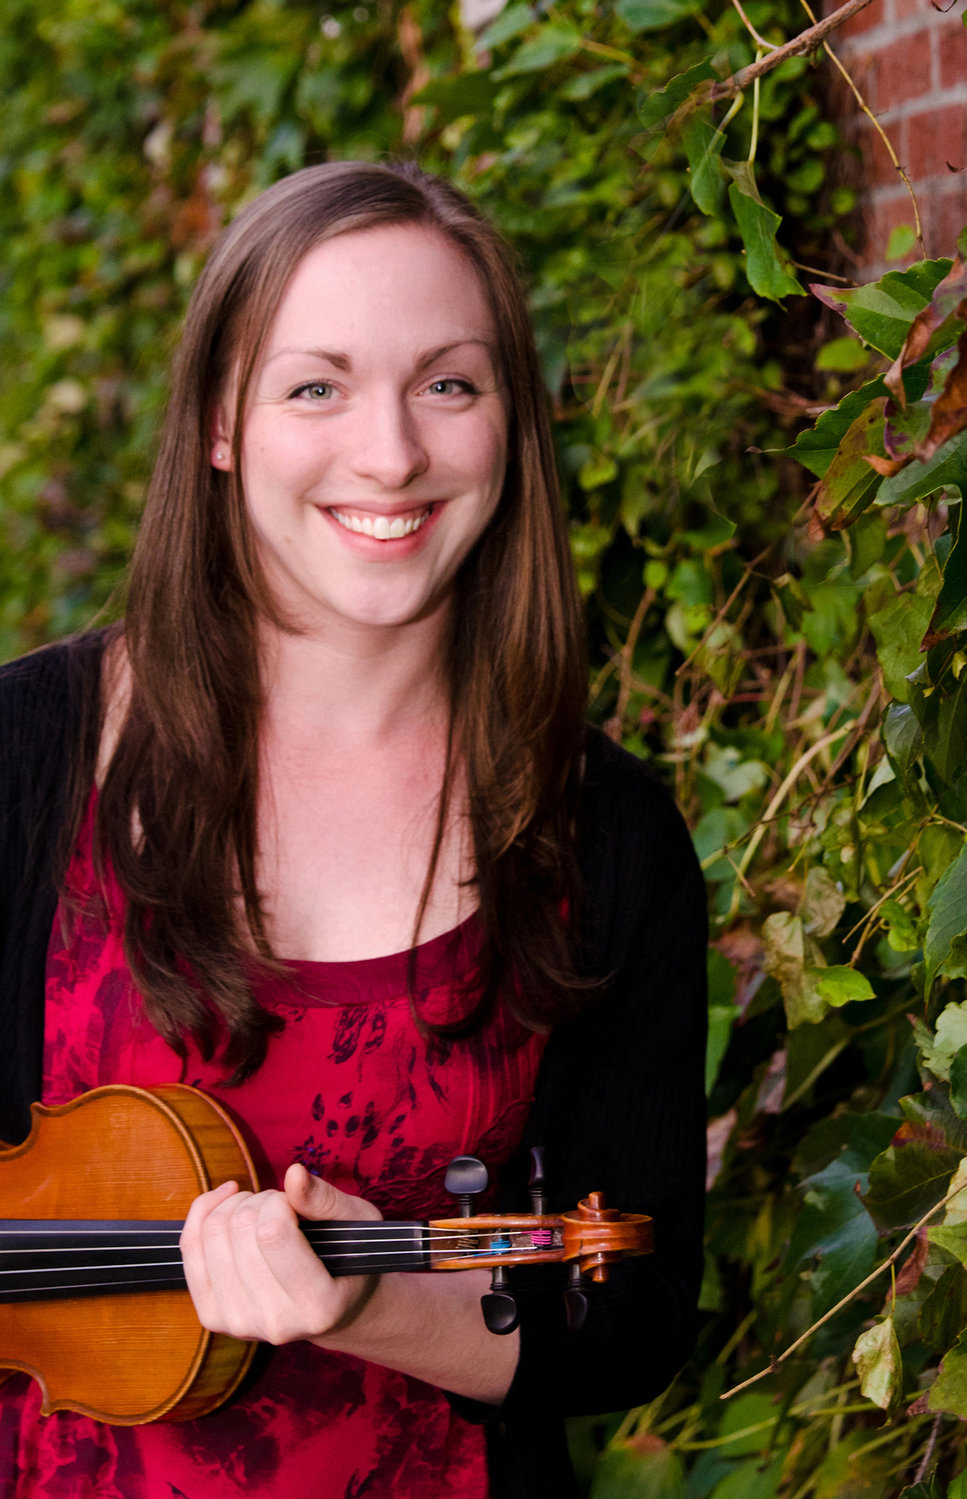 Julie Metcalf plays fiddle at the Rehoboth contra dance on Friday, May 24